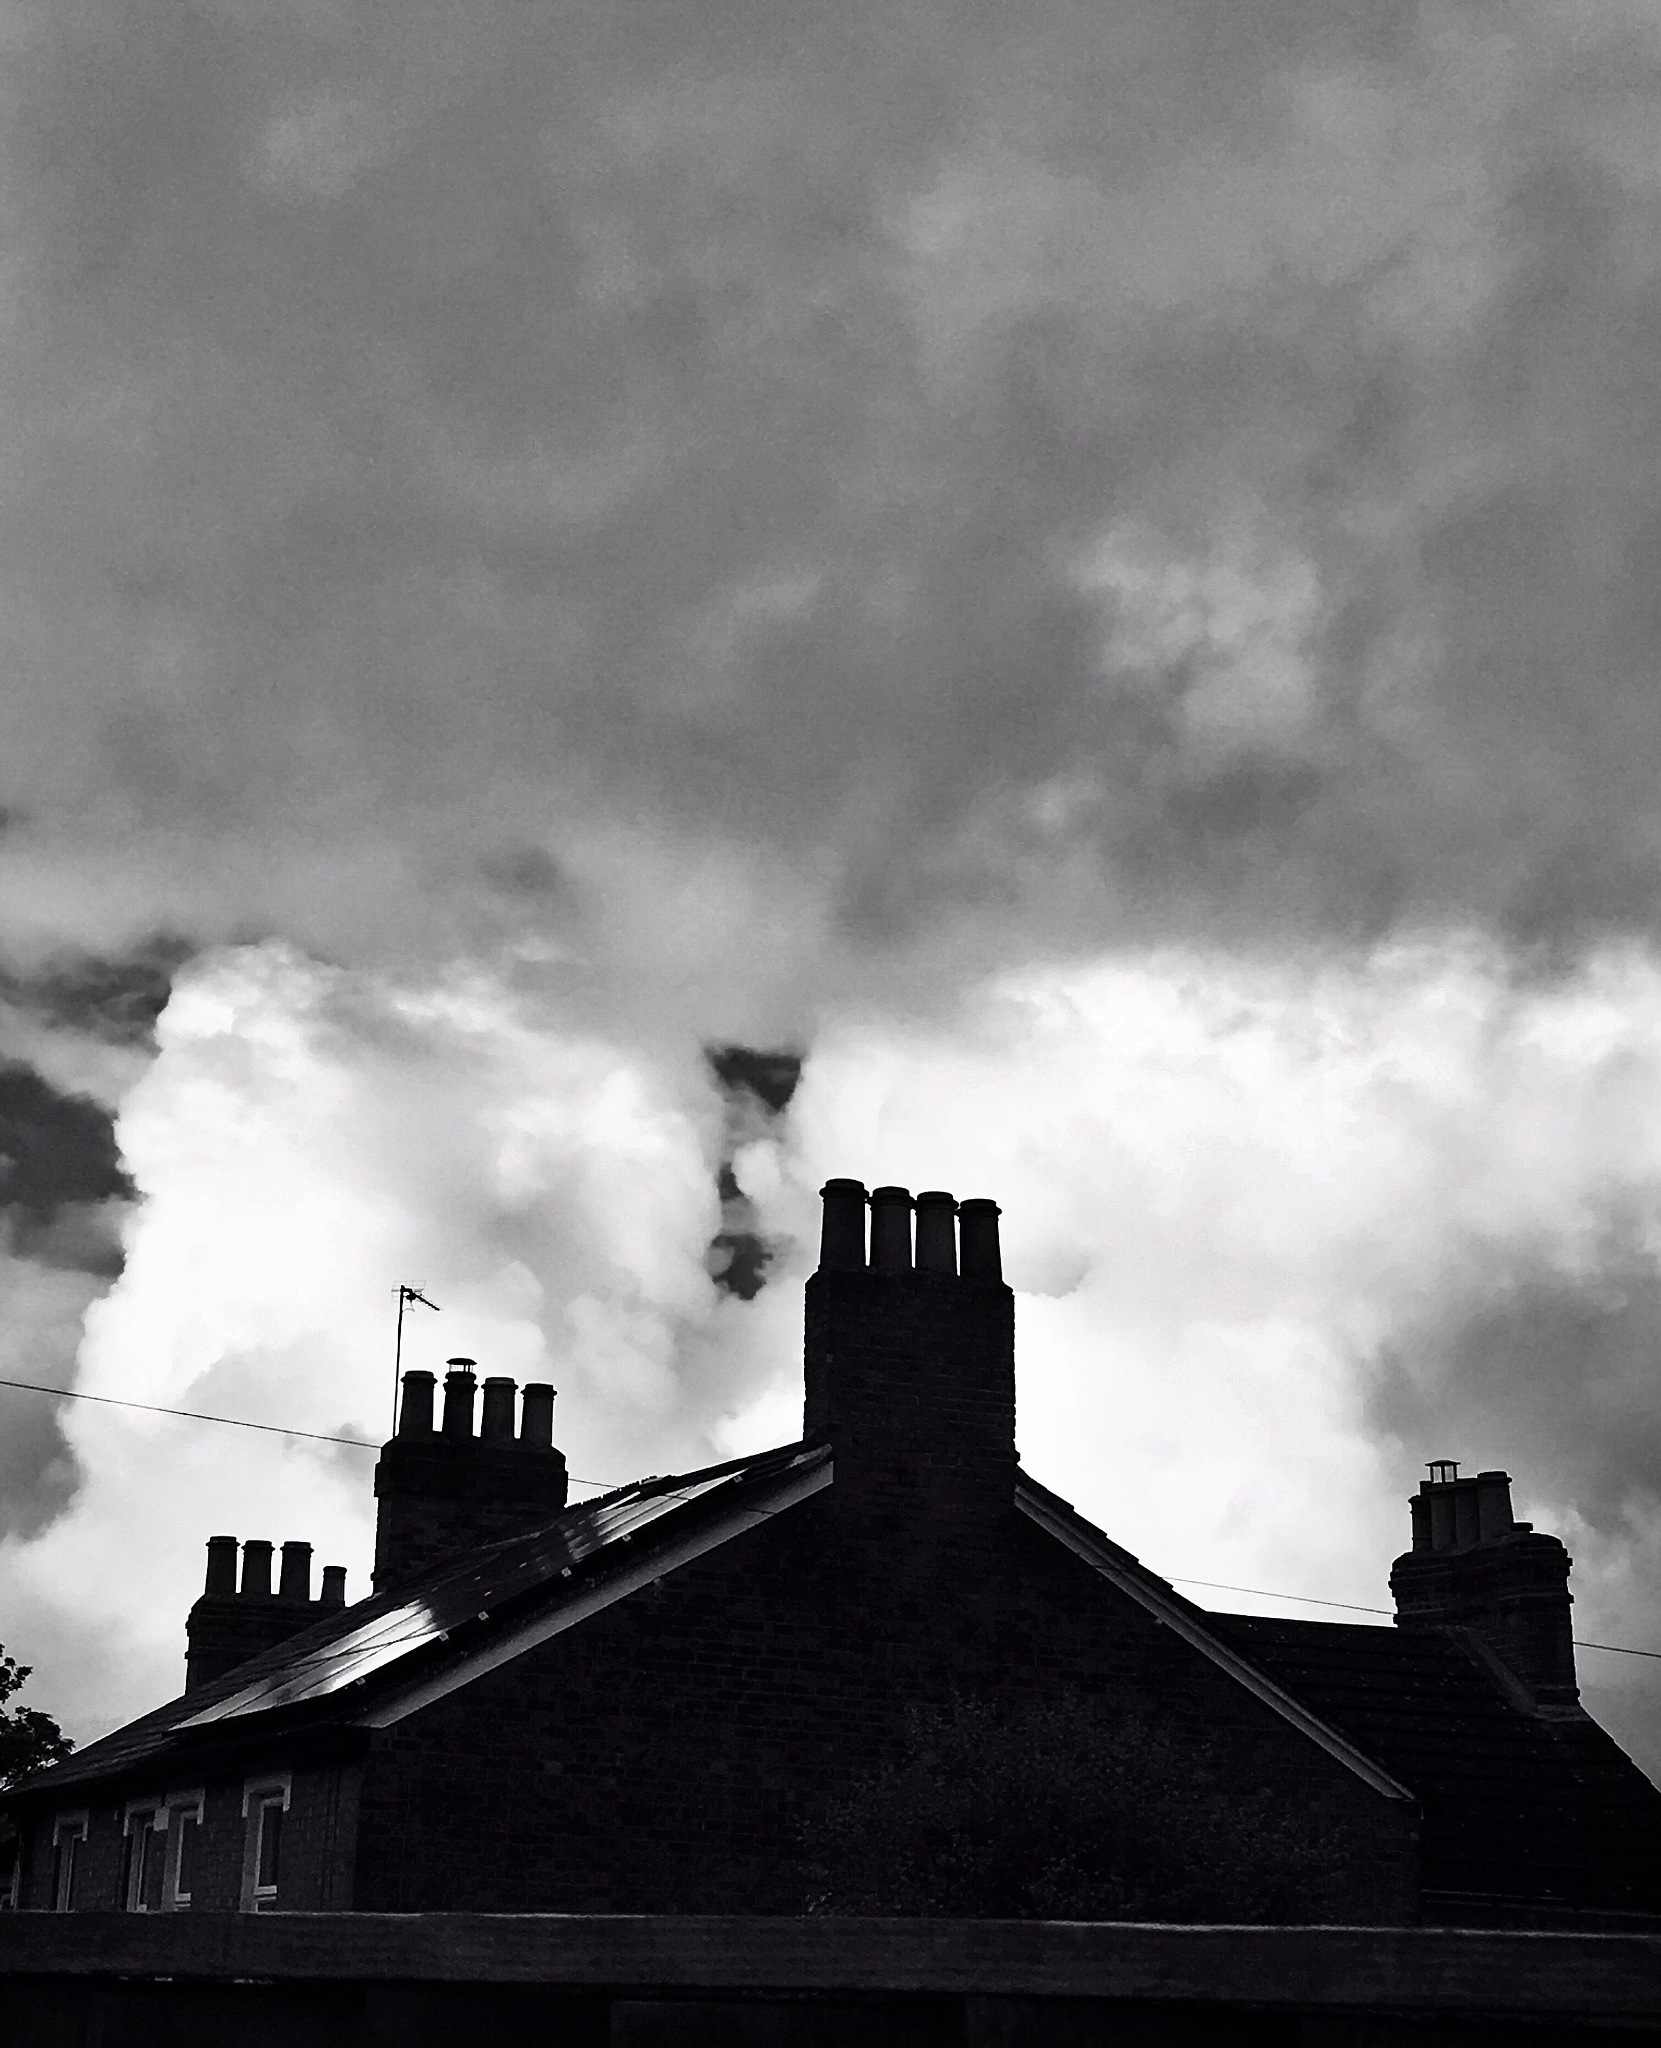 Chimneys early morning in the sky by JayBee